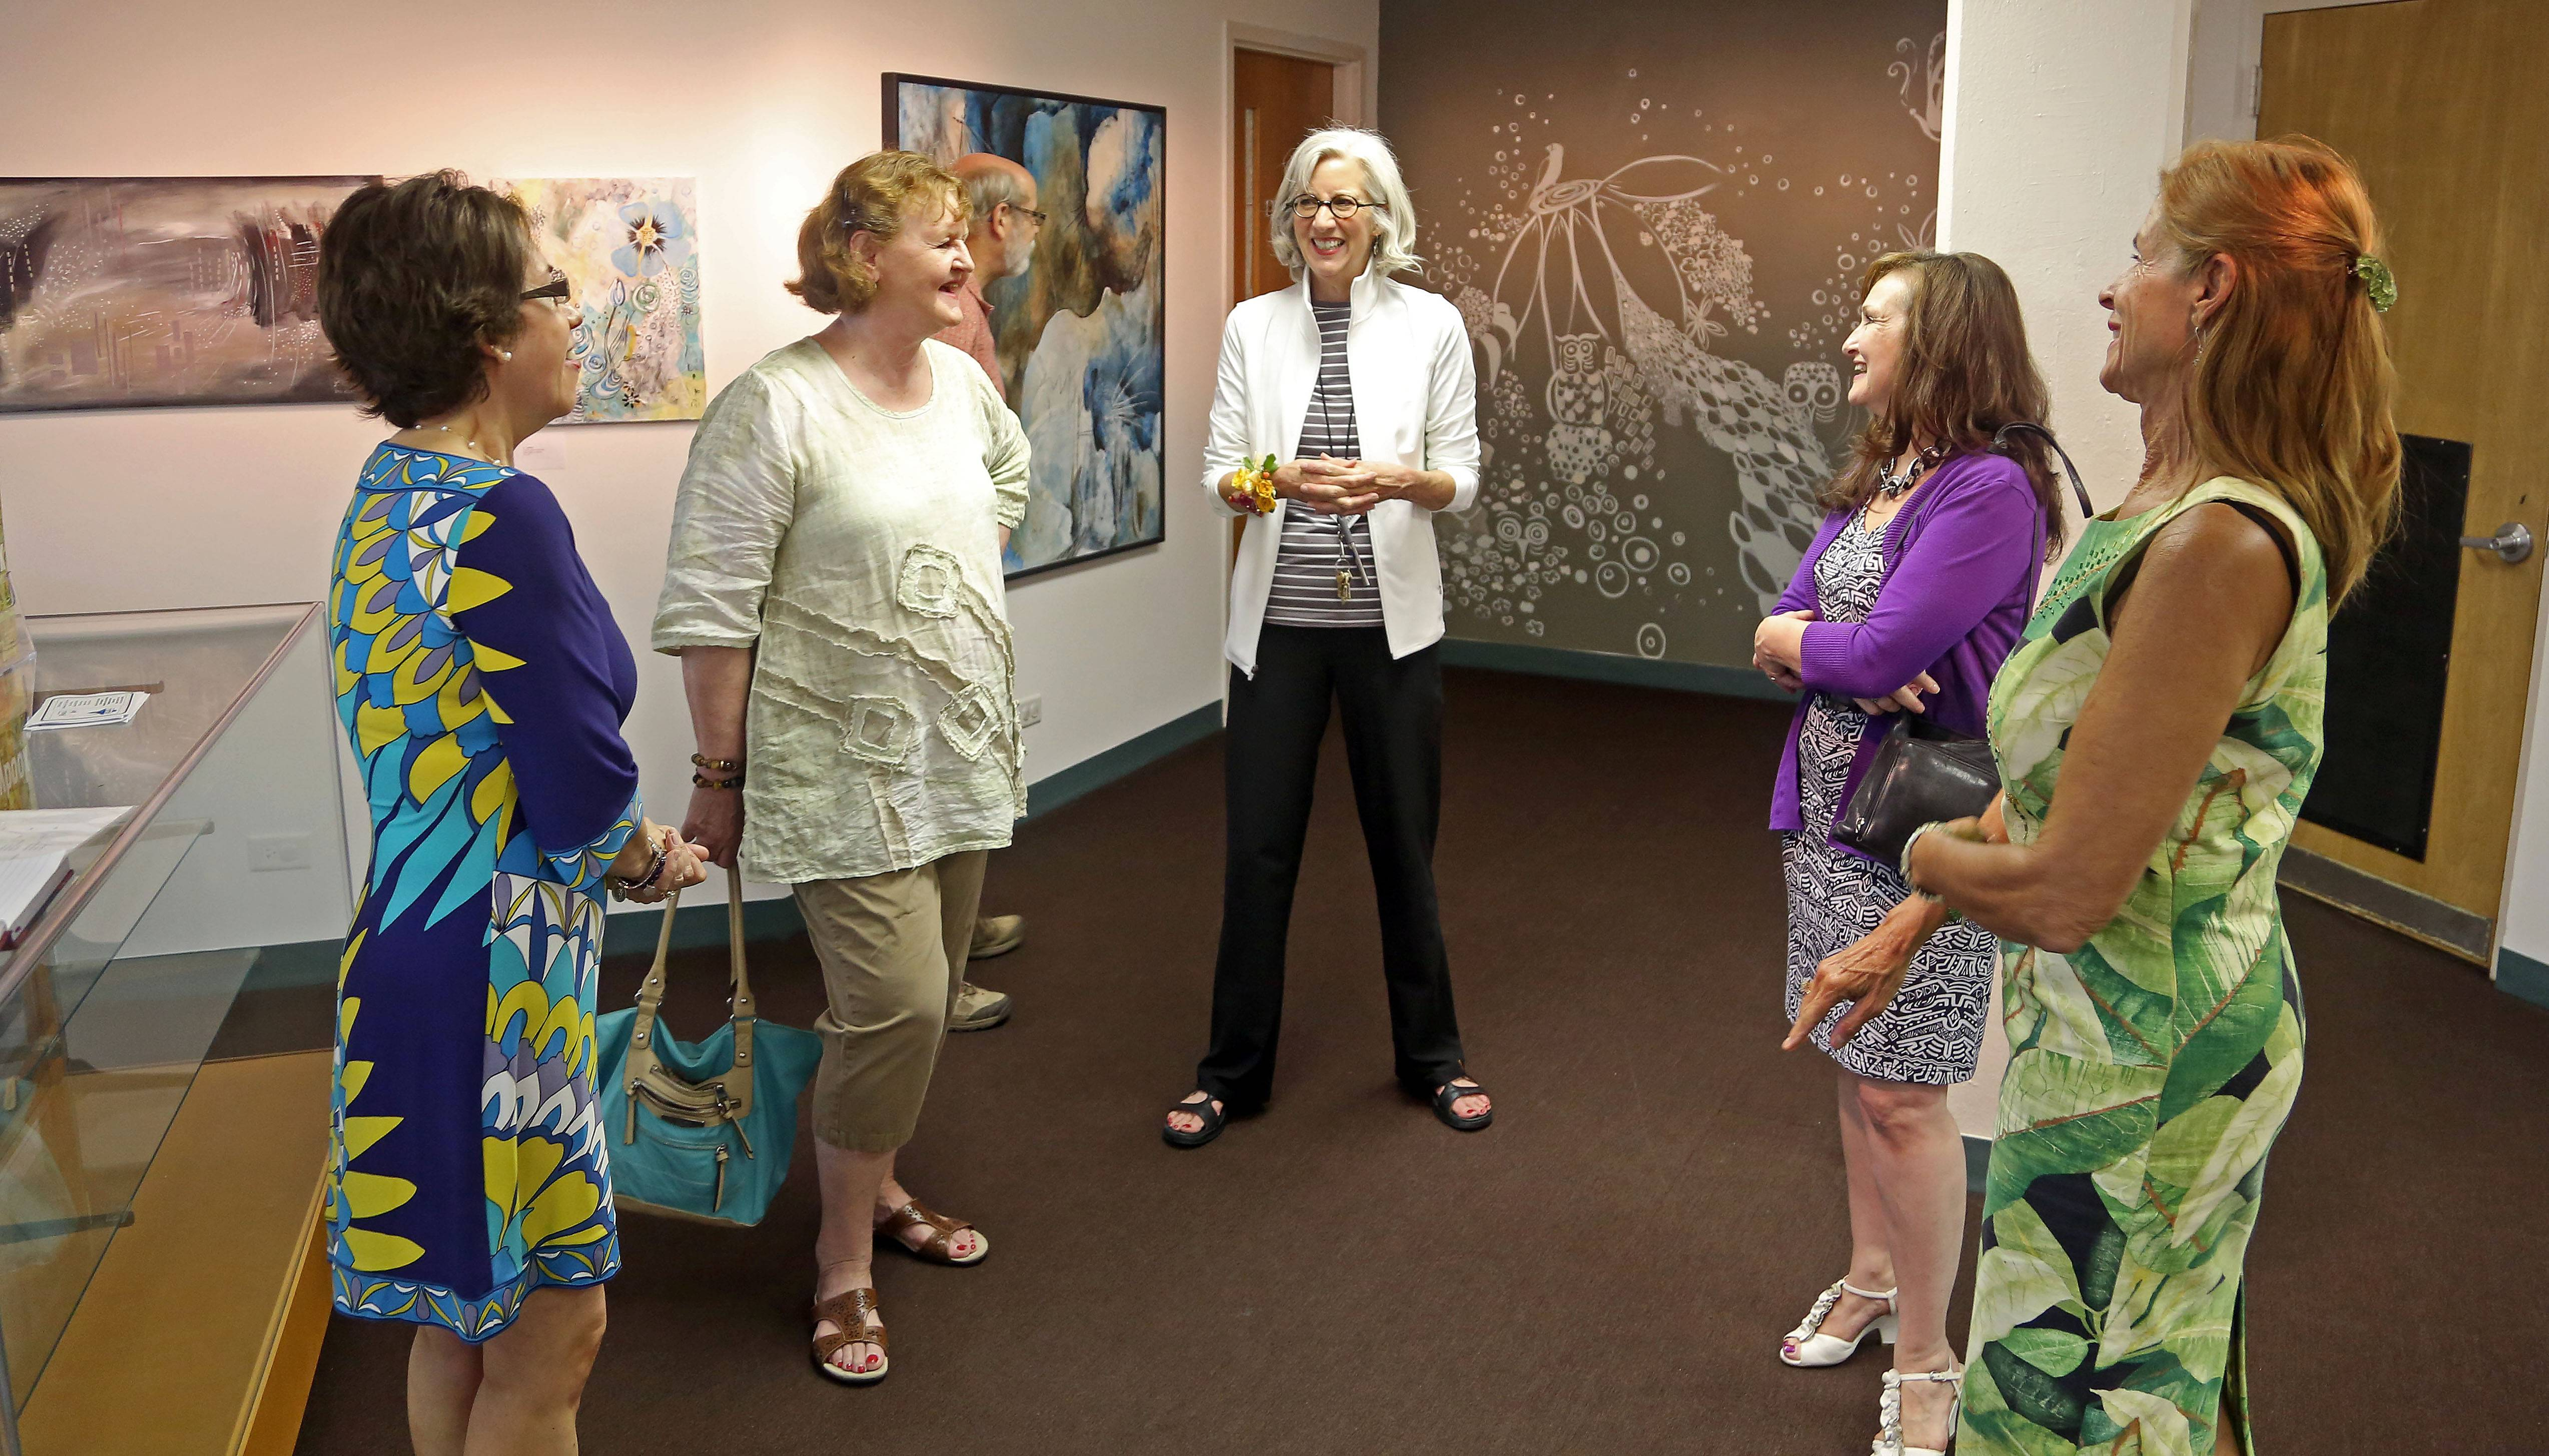 Susan Matthews, middle, talks with people attending a gallery opening in June for Roselle artist Paulina Engel at the Hanover Park Park District gallery. Matthews has retired from her job as cultural arts director for the Hanover Park Park District. The gallery is being renamed after Matthews.